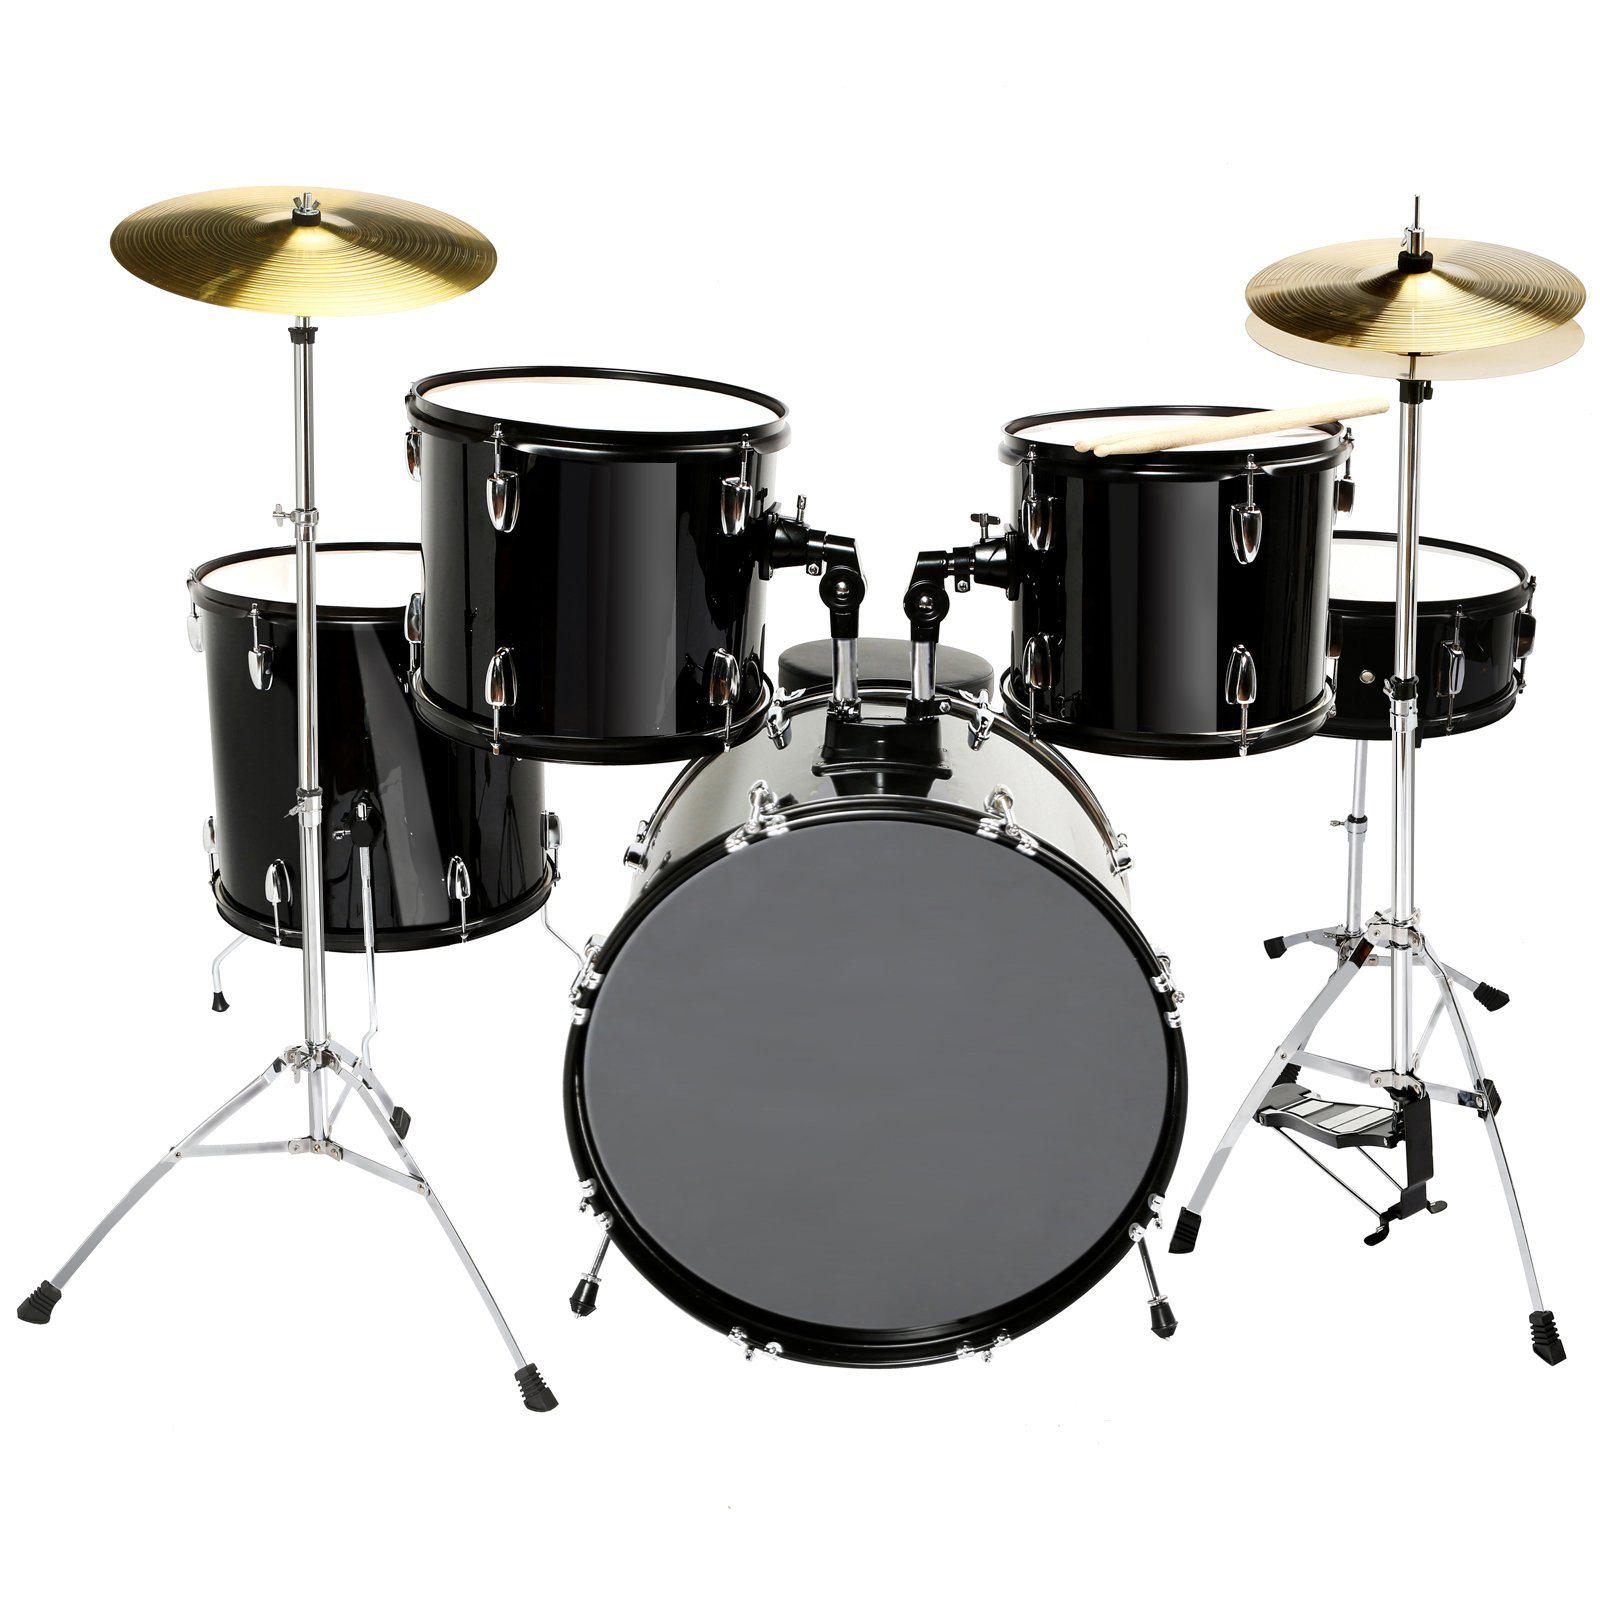 LAGRIMA 5 Piece Full Size Drum Set for Adult with Stand, Cymbals, Hi-Hat, Pedal, Adjustable Drum Stool and 2 Drum Sticks, Black, 22 Inches